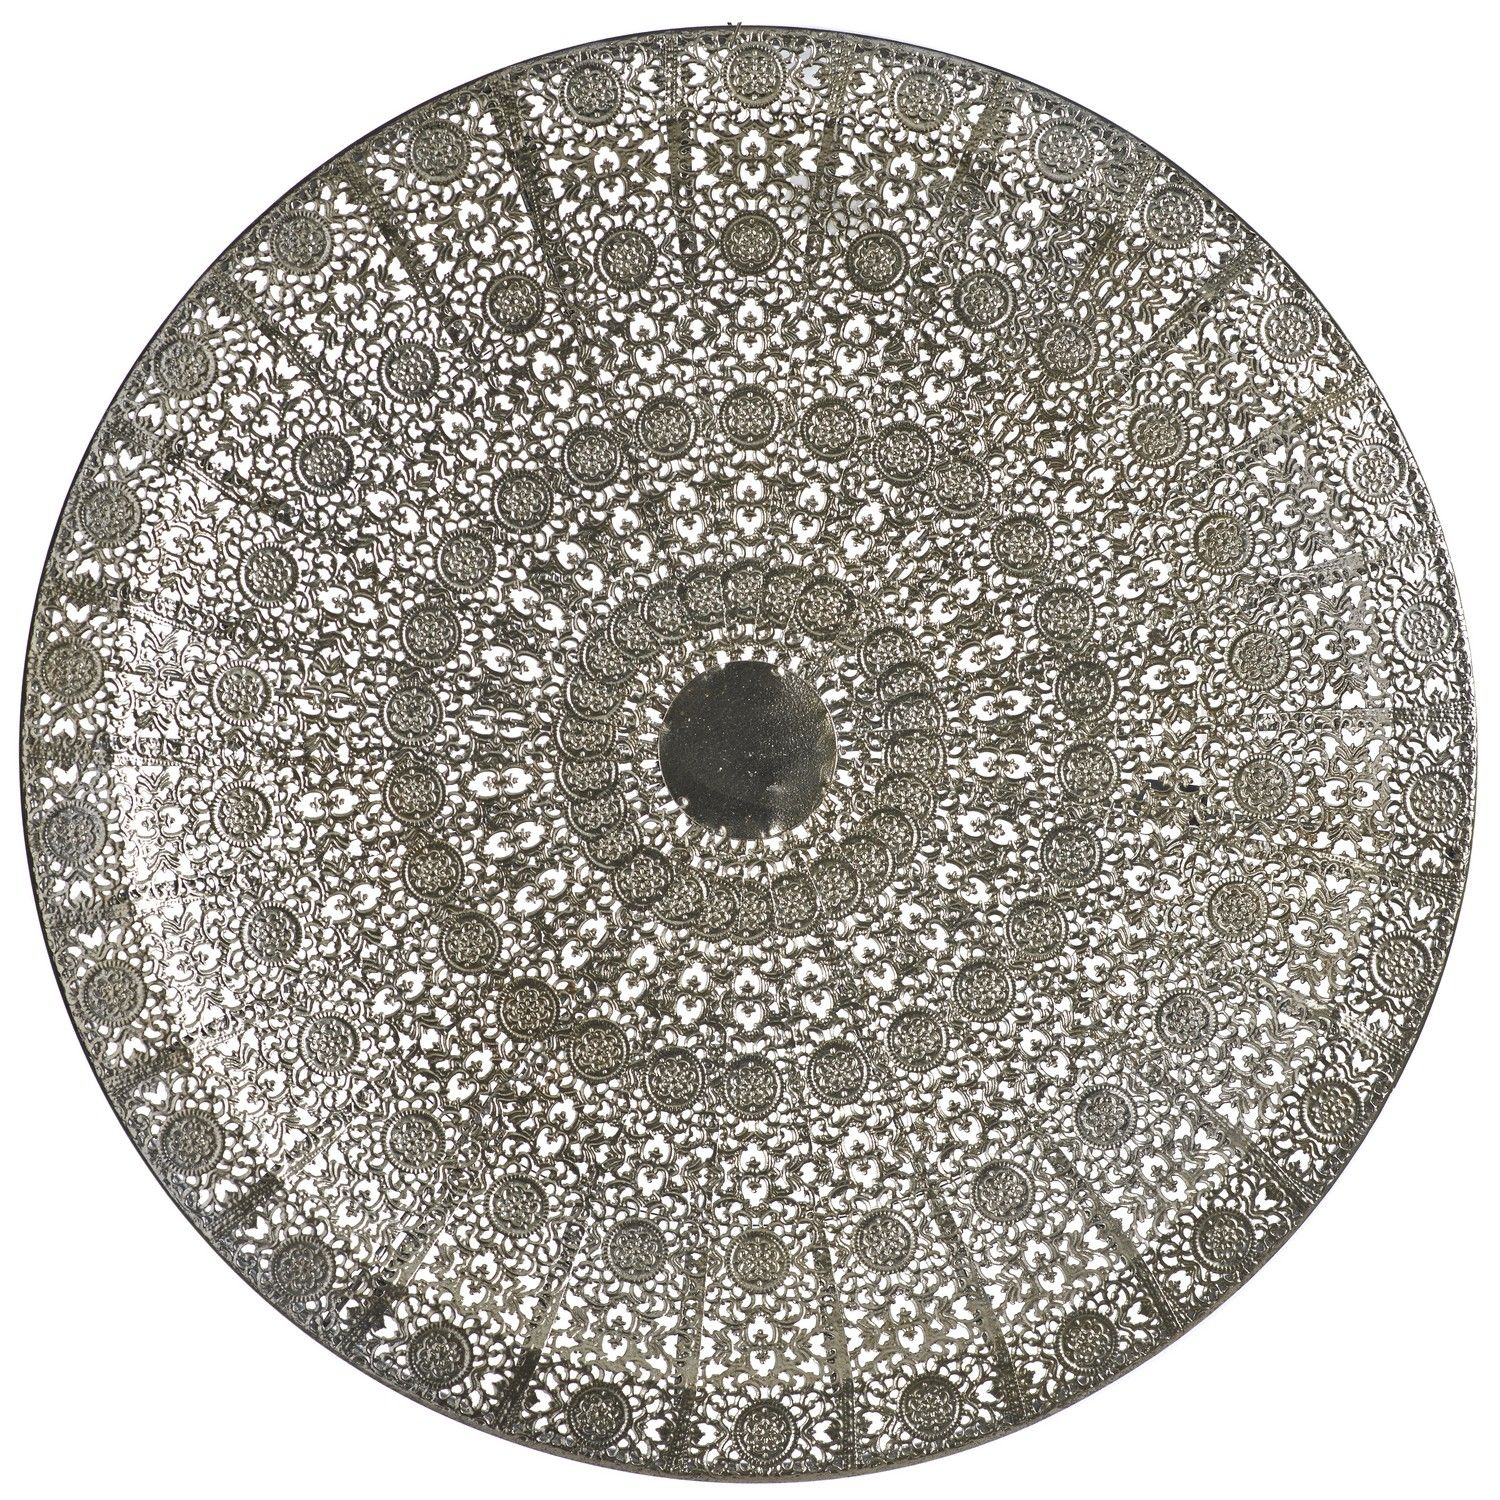 Http www therange co uk champagne silver moroccan plate wall art the range fcp product 100721 18 99